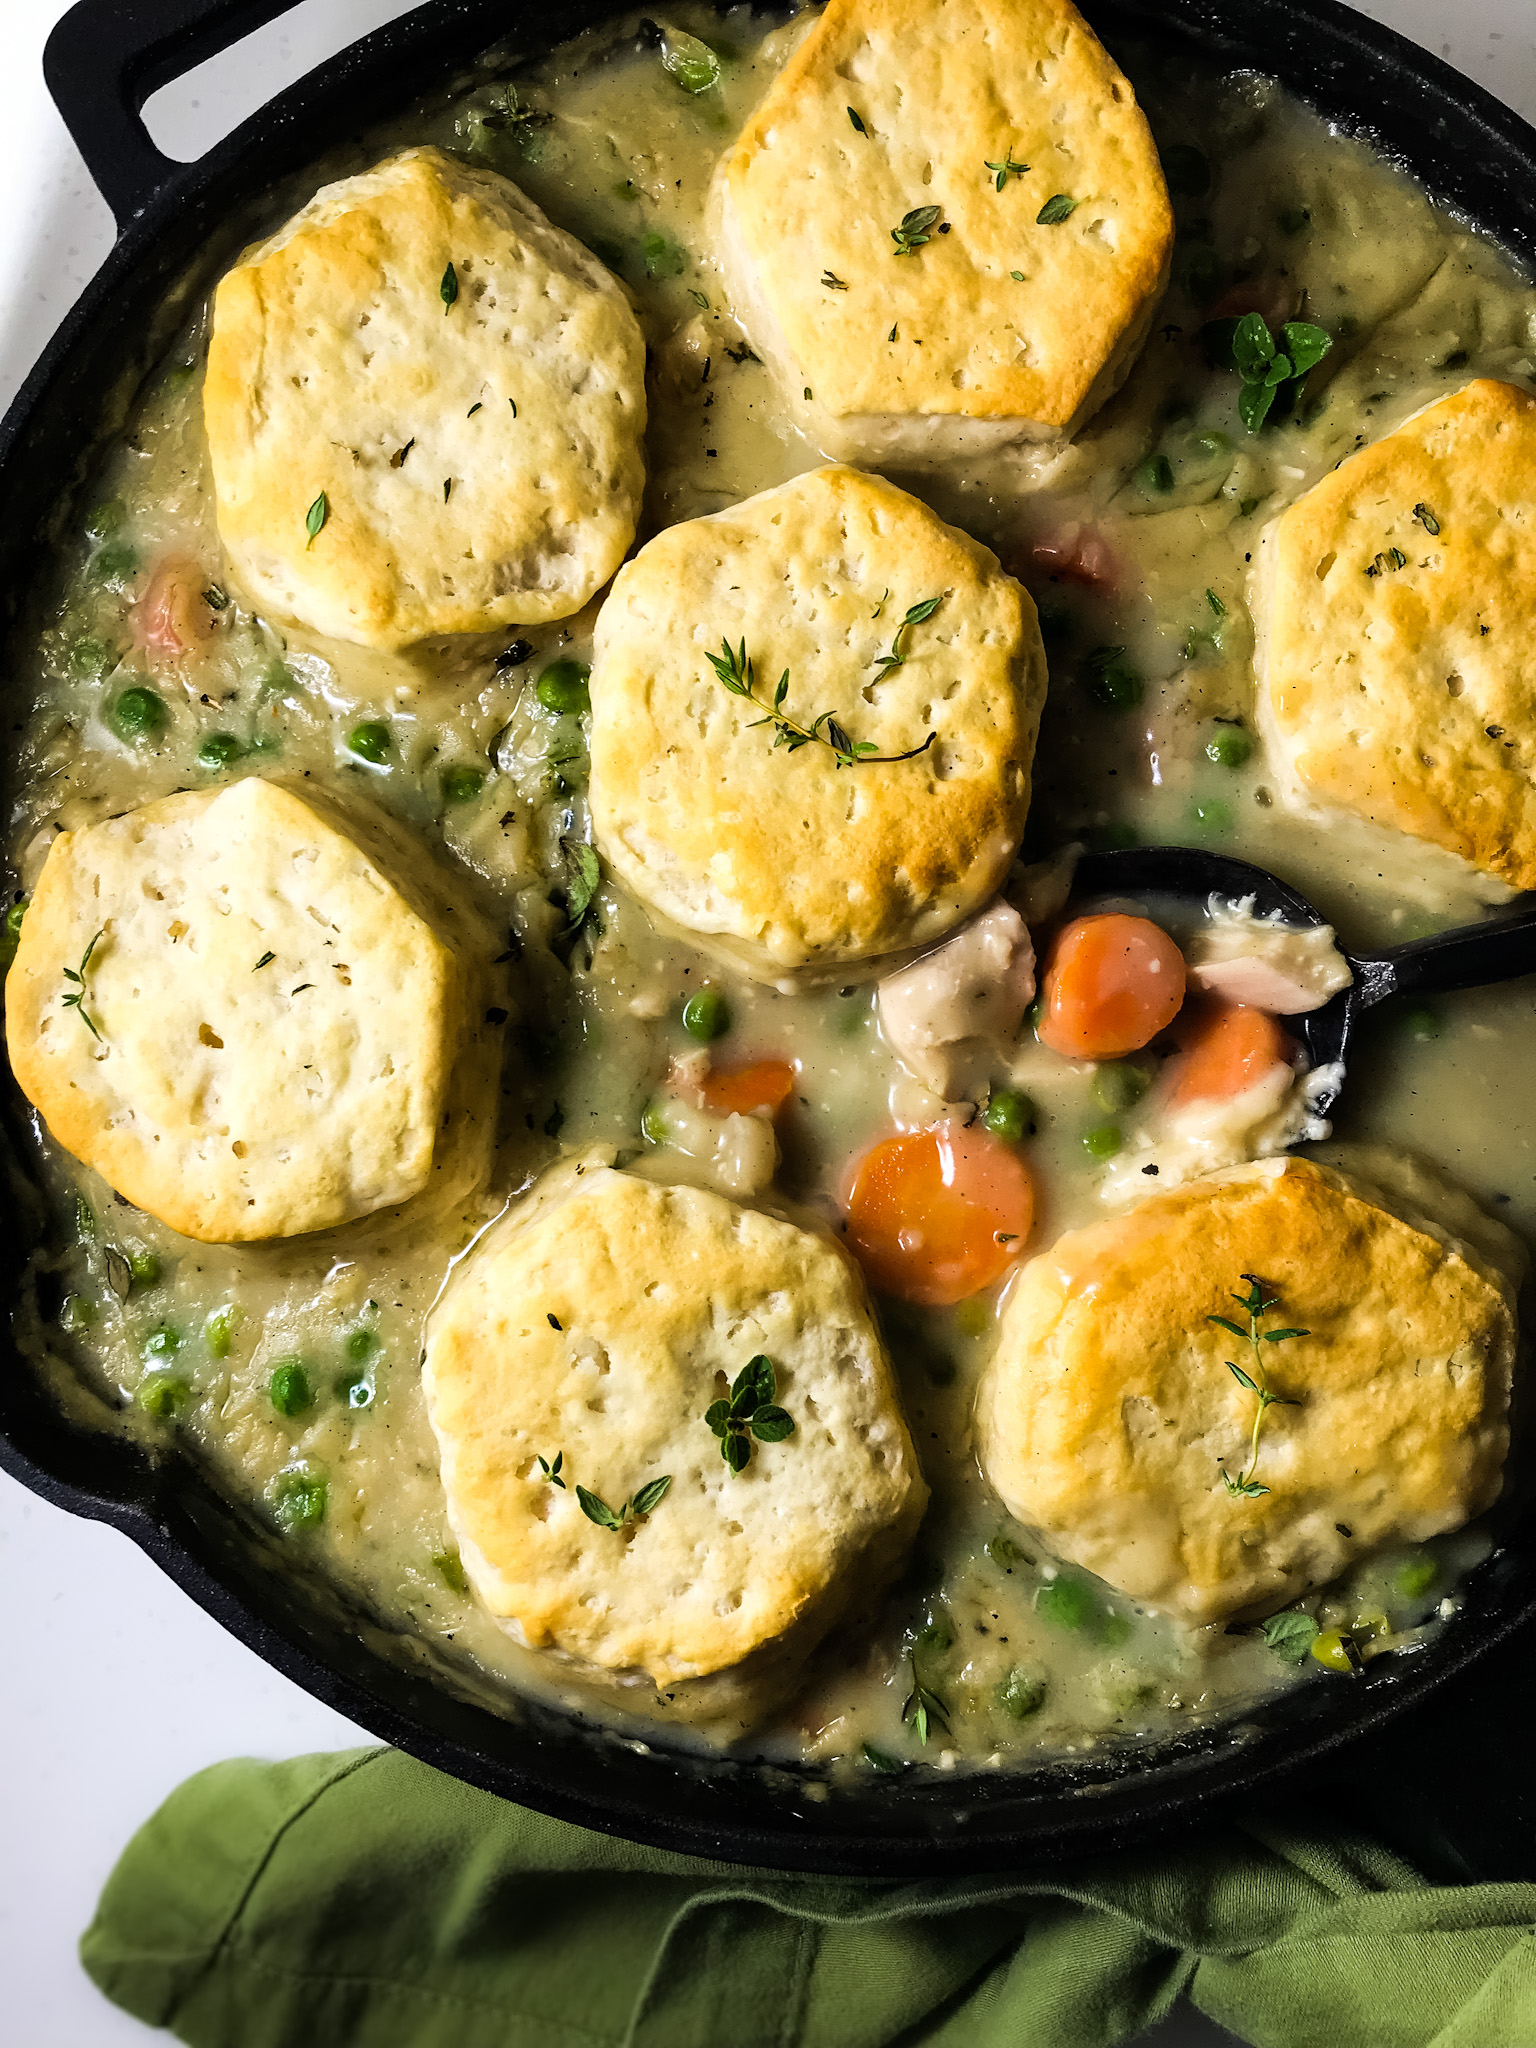 Ina's Chicken Stew with Biscuits